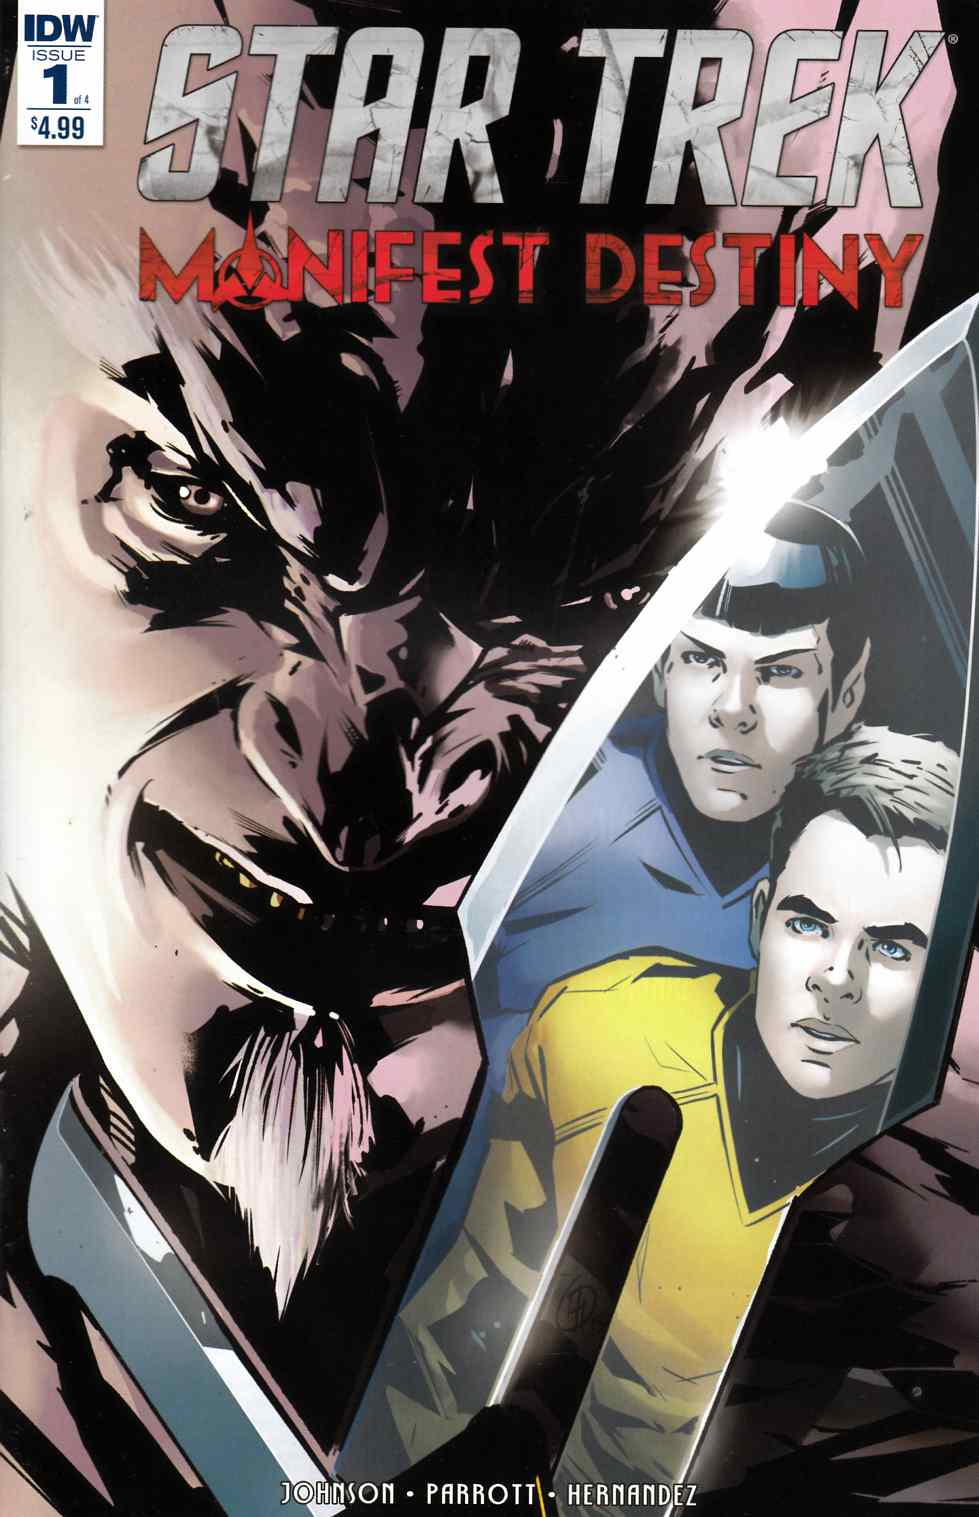 Star Trek Manifest Destiny #1 [IDW Comic] THUMBNAIL